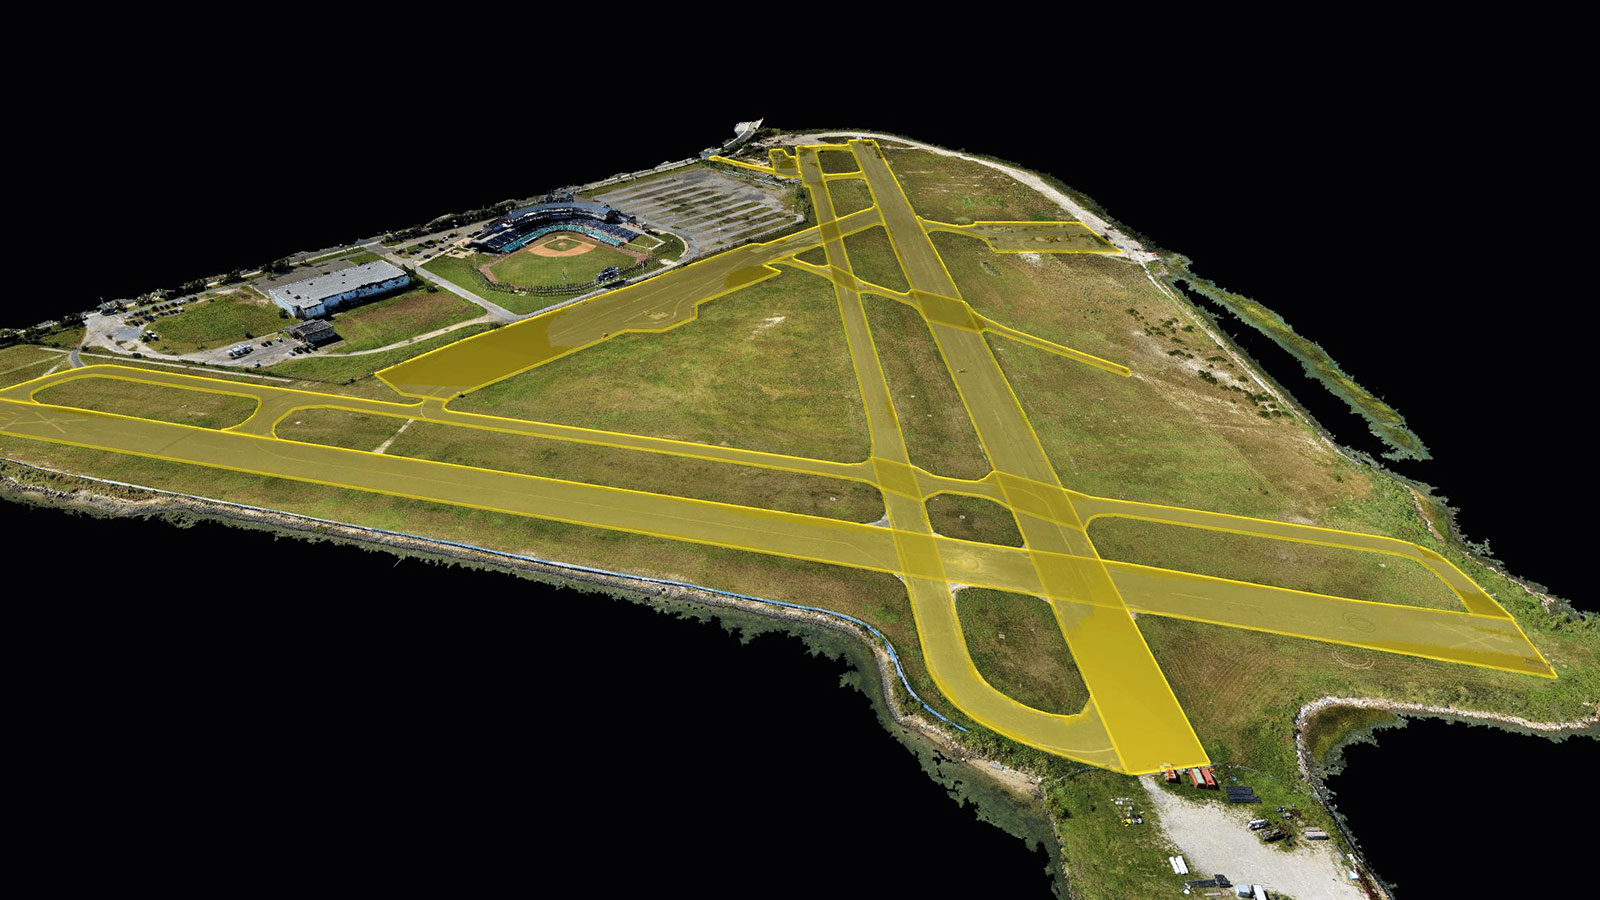 The airfield in a point cloud